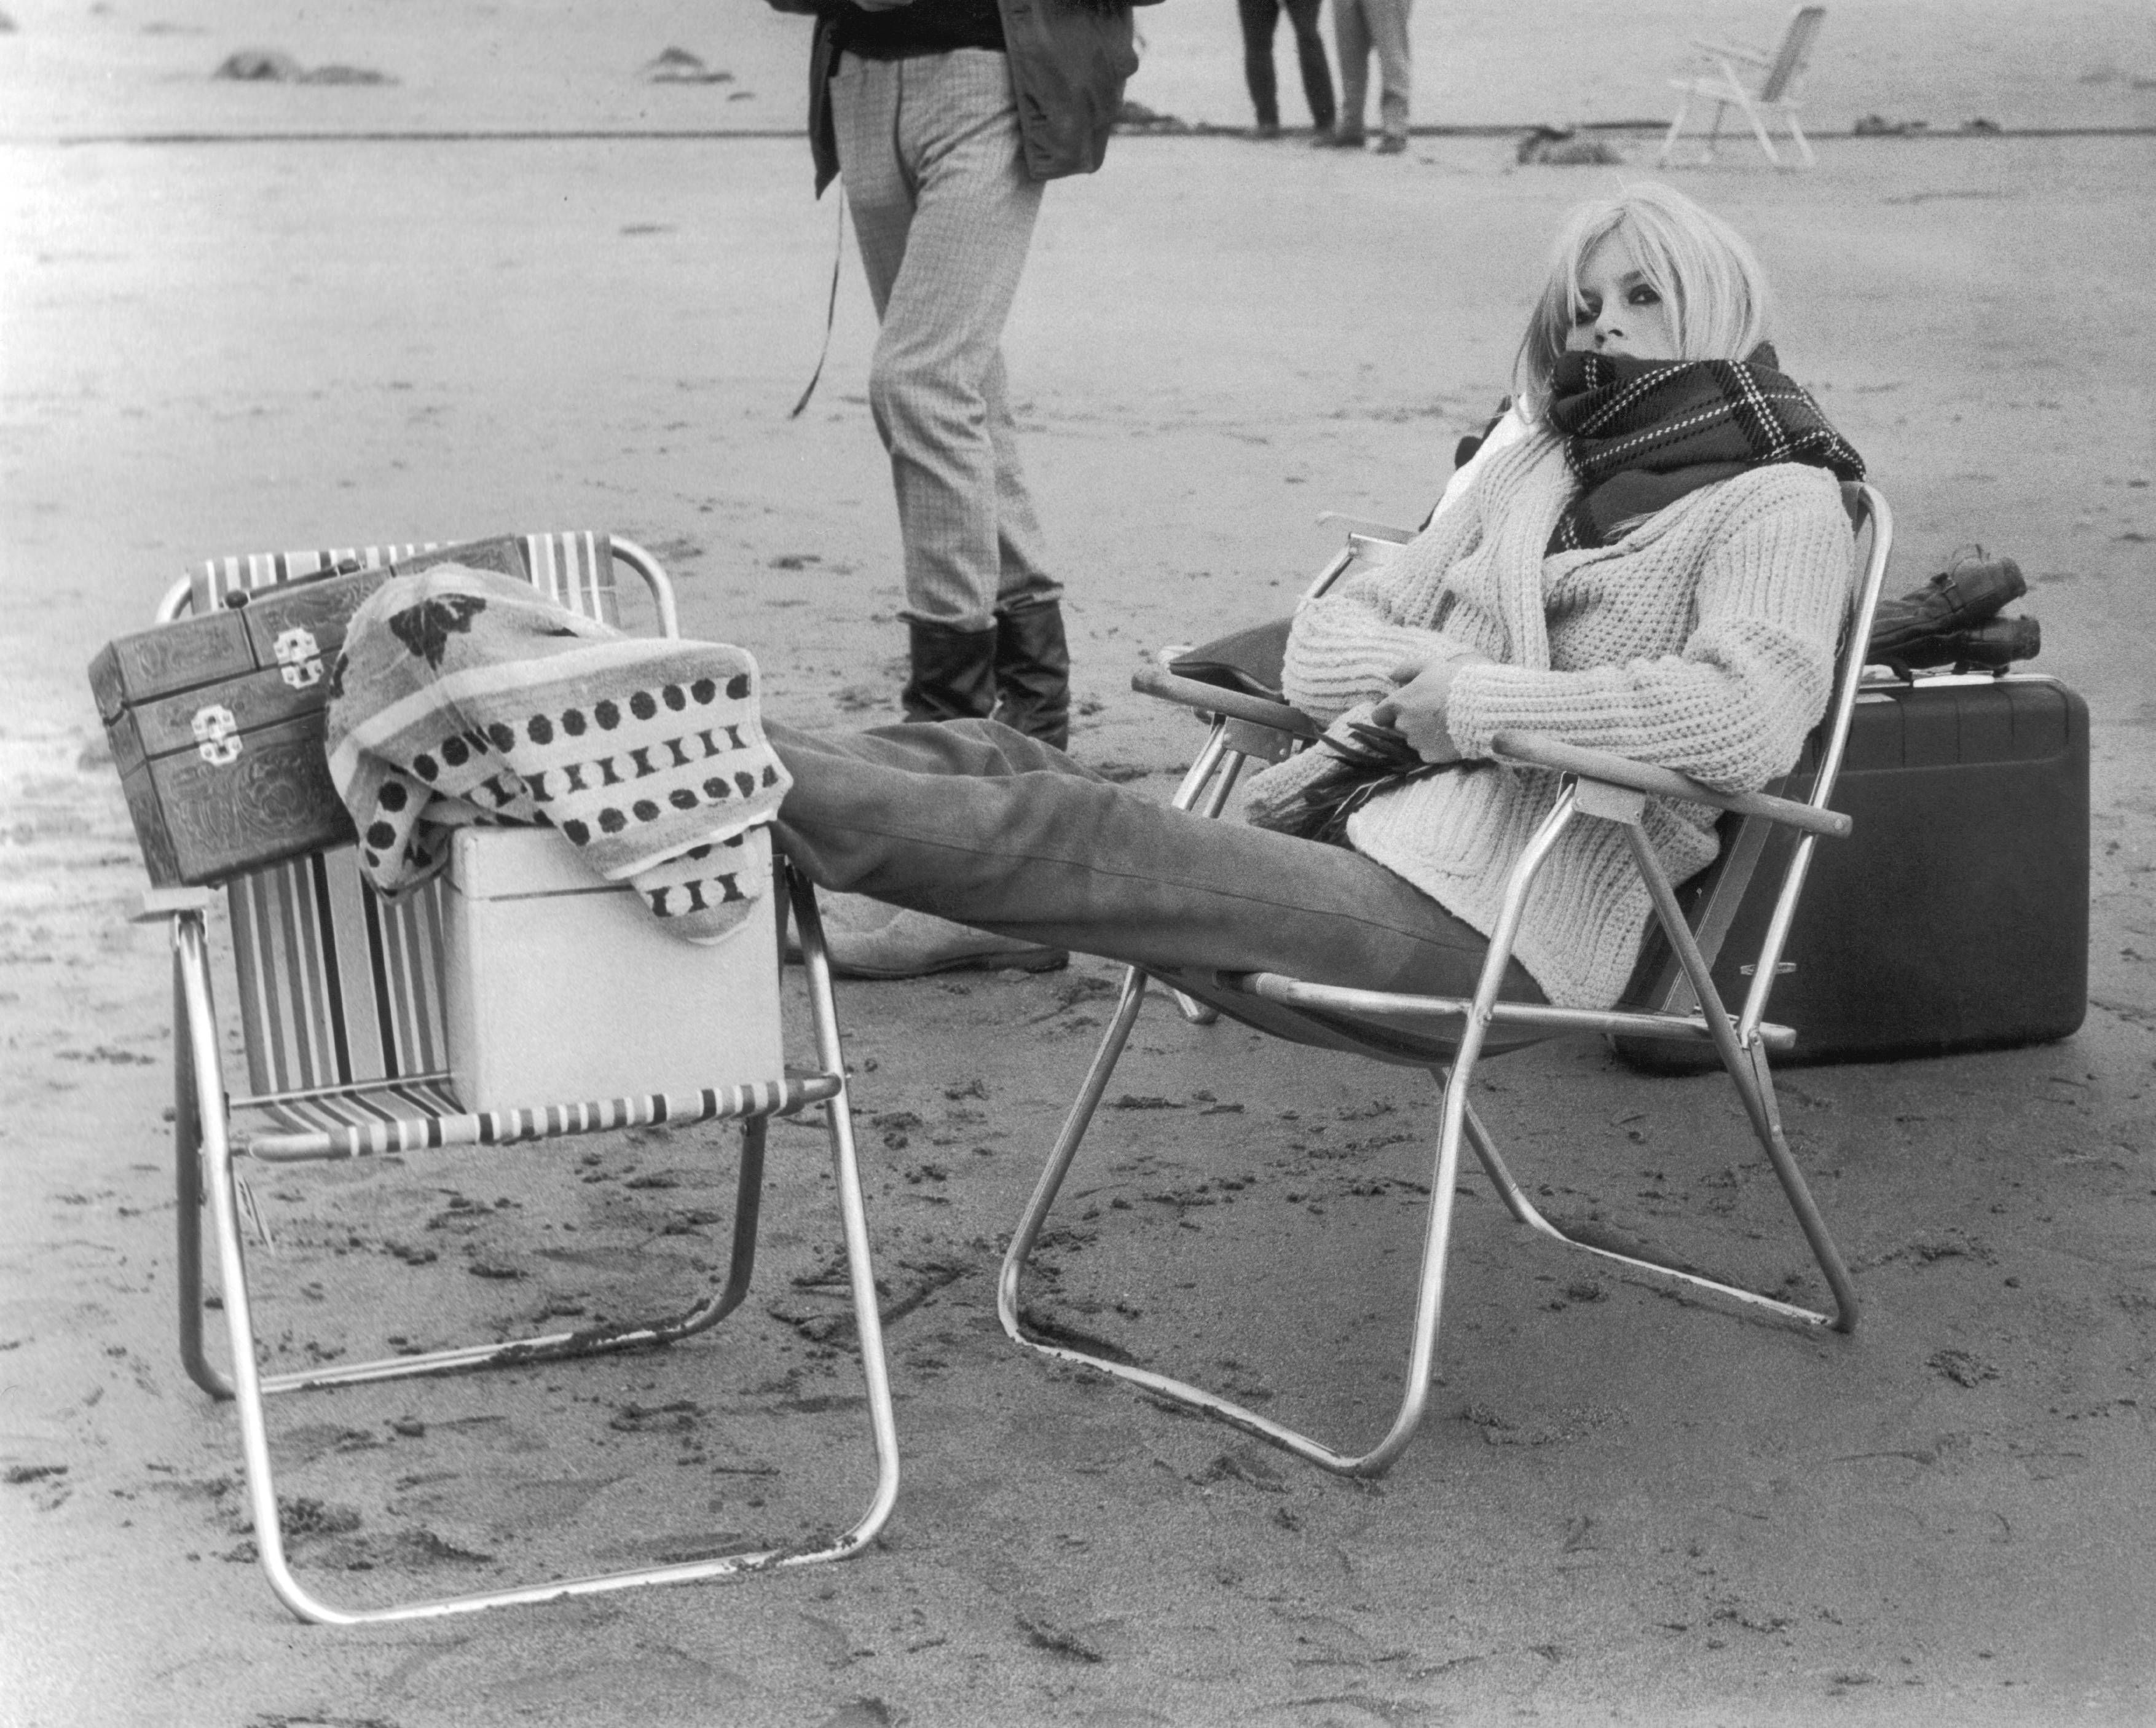 brigitte bardot during a film shooting in scotland 1966